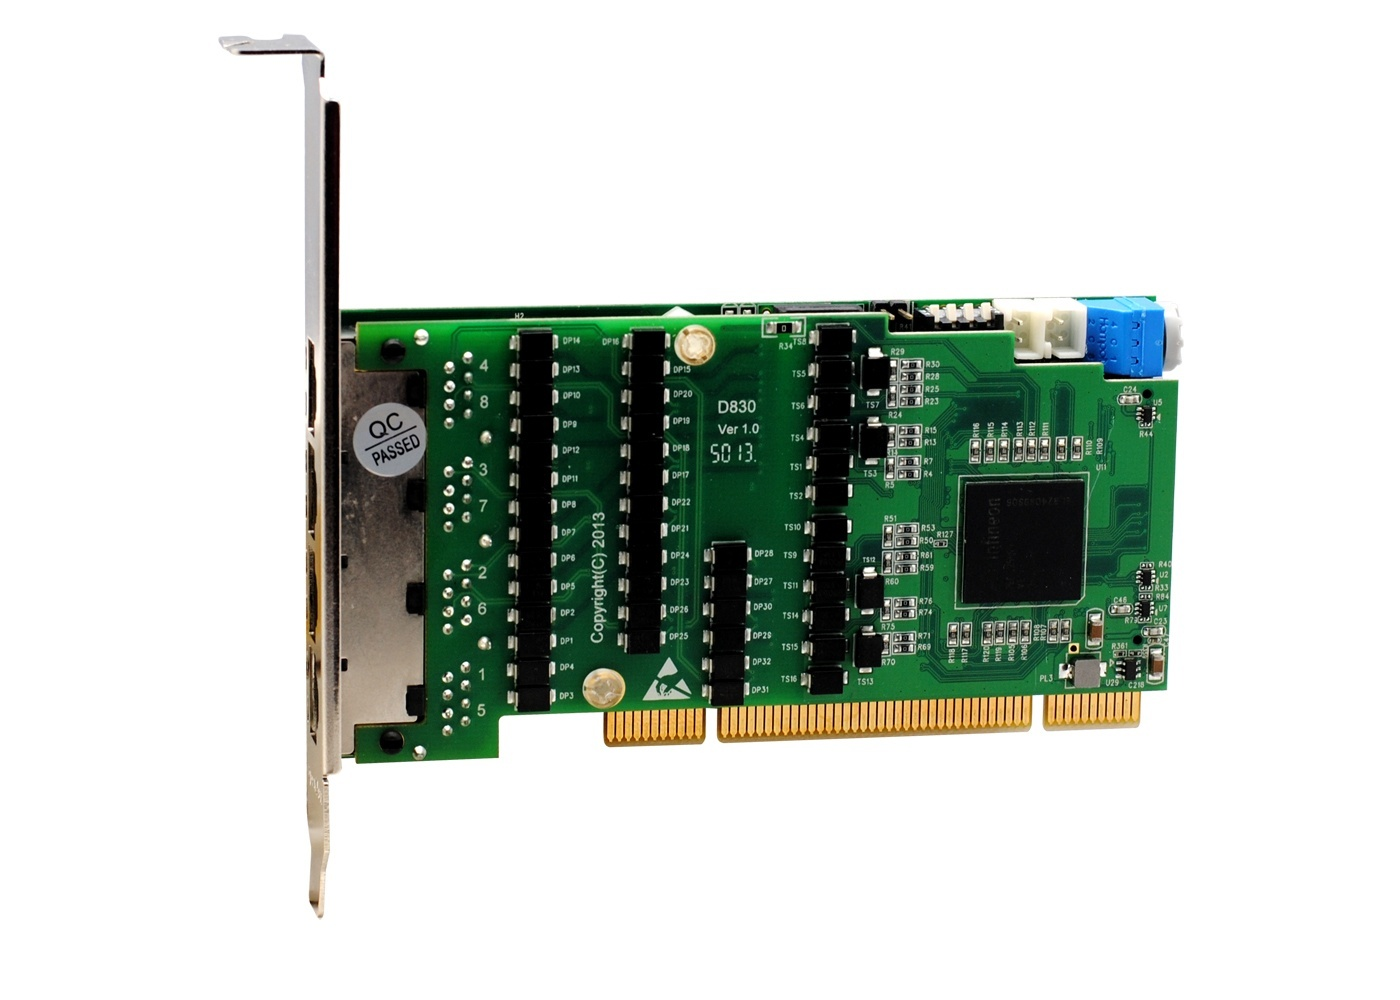 OpenVox DE830P 8 port T1/E1/J1 PCI card